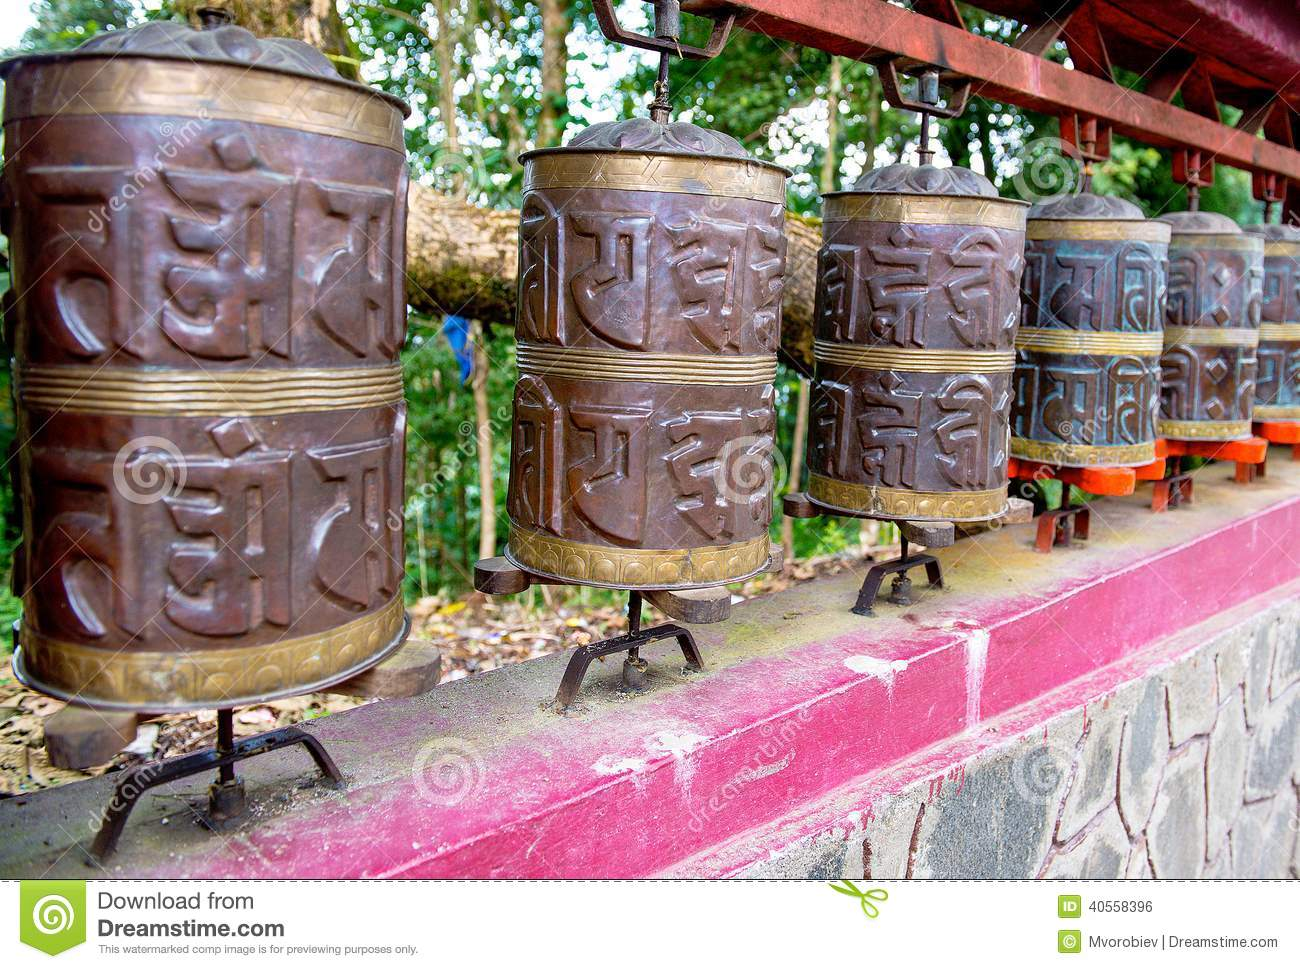 Prayer wheel in Sikkim. The Indian Himalayas